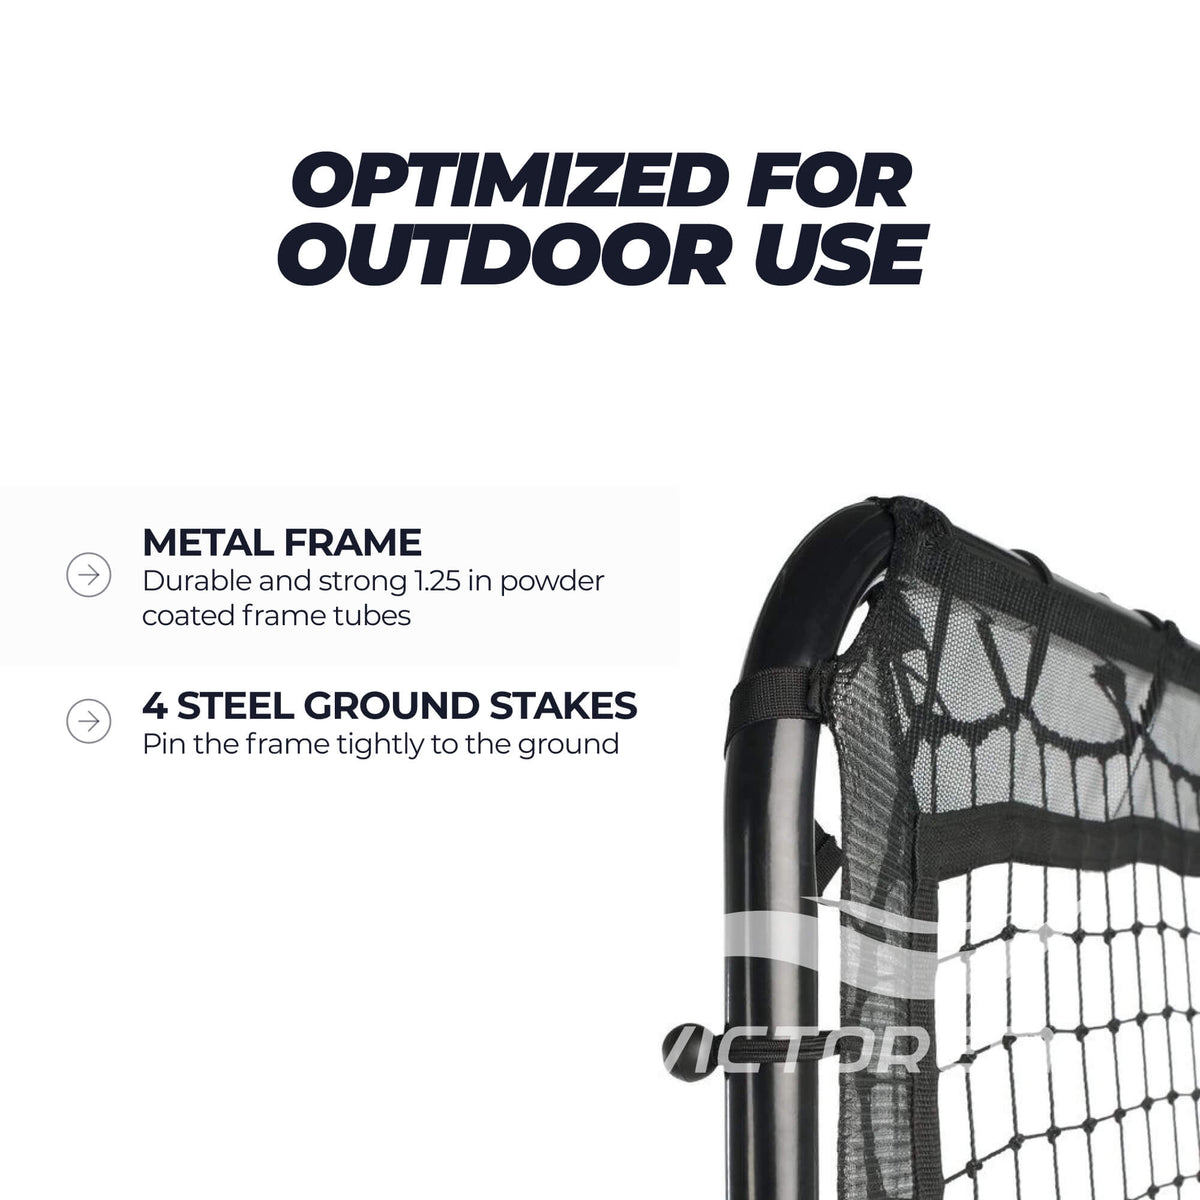 lacrosse rebounder for outdoor use